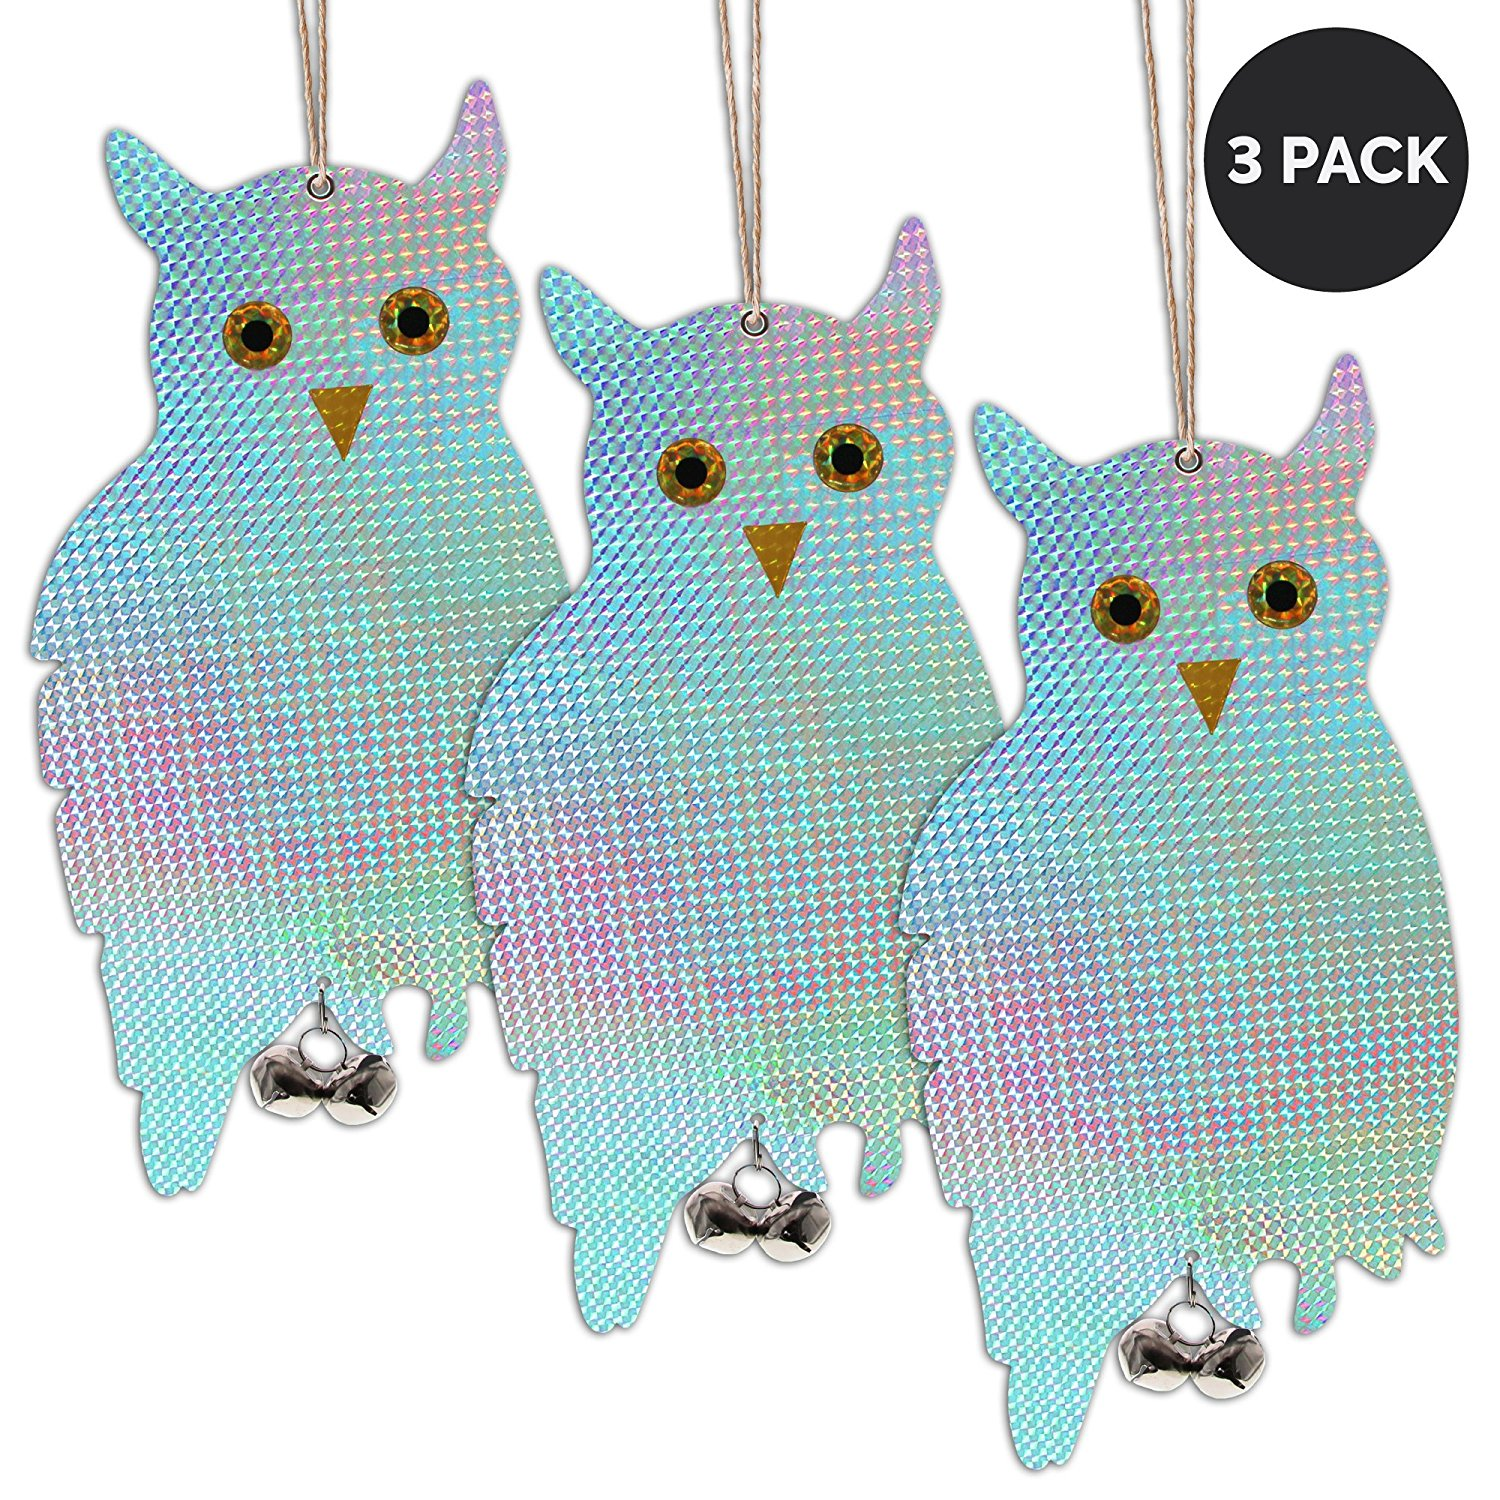 "Reflective Owl Decoy & Bird Repellent - Double-Sided 16"" Flashy Scarecrow Bird Deterrent & Wood Pecker Deterrents with Tinkling Bells (3-Pack)"